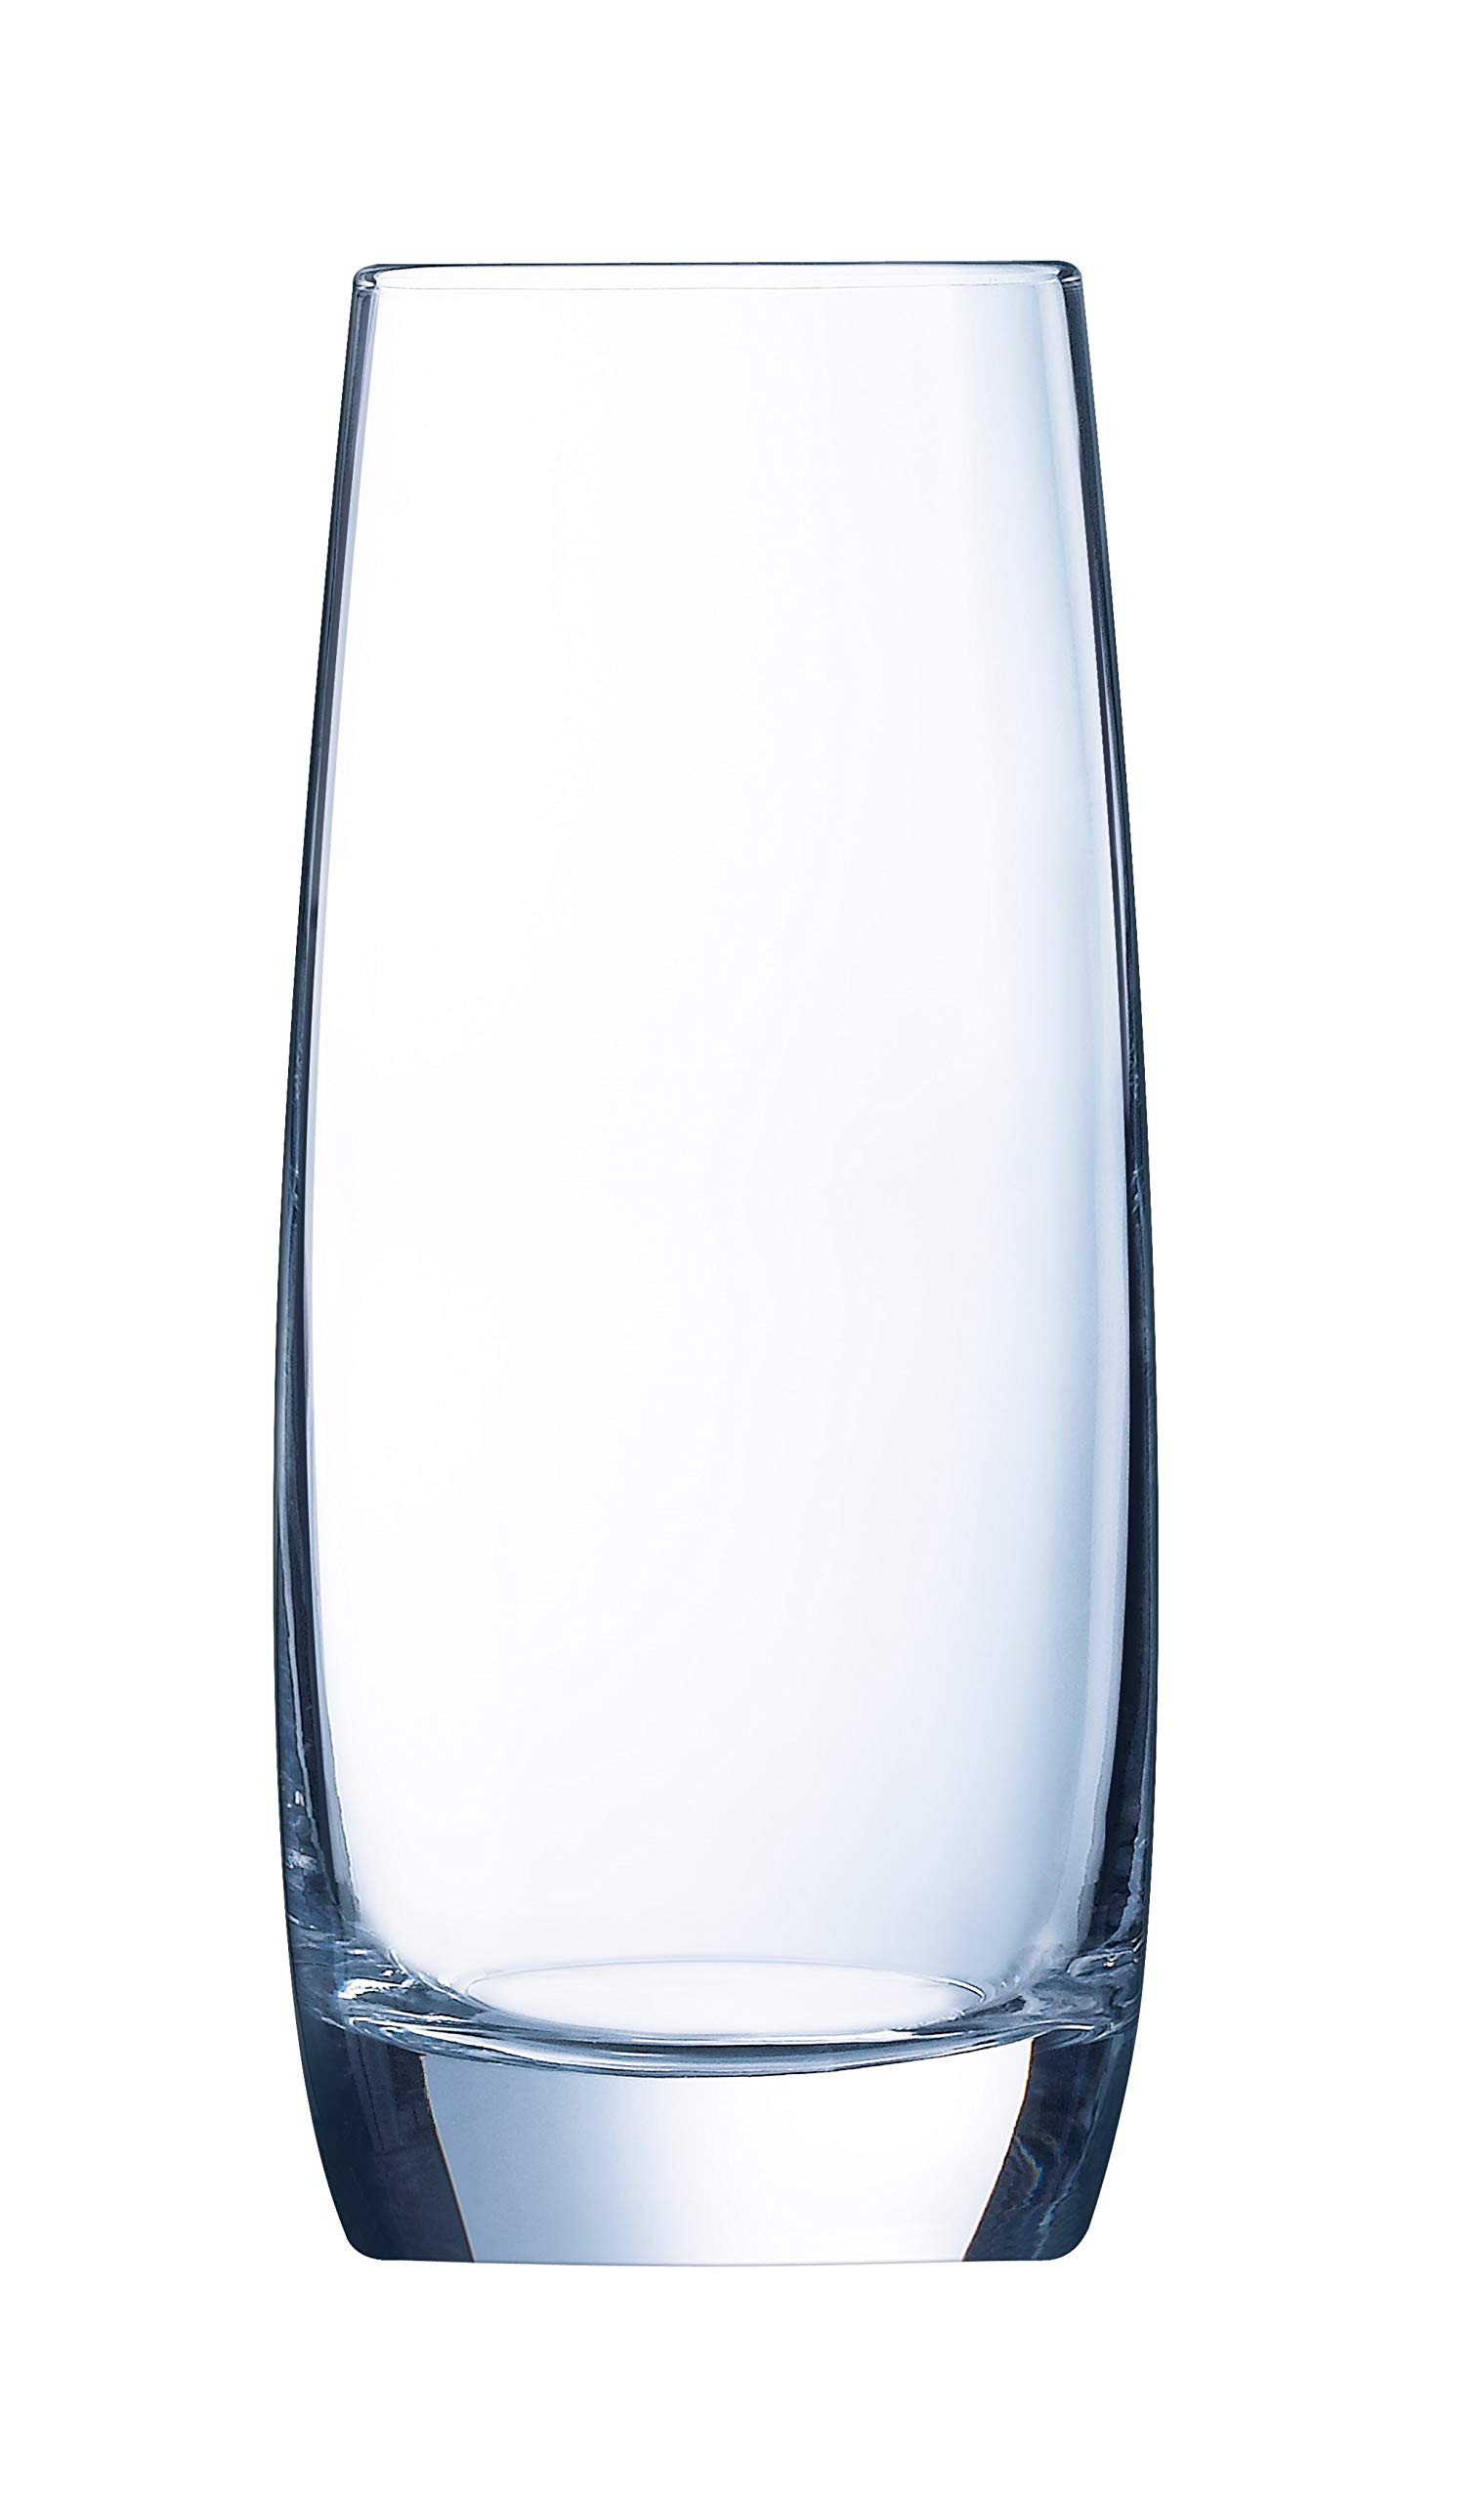 Chef&Sommelier L9238 Chef & Sommelier Domaine 16 Ounce Cooler Glass, Set of 6, 16 oz, Clear